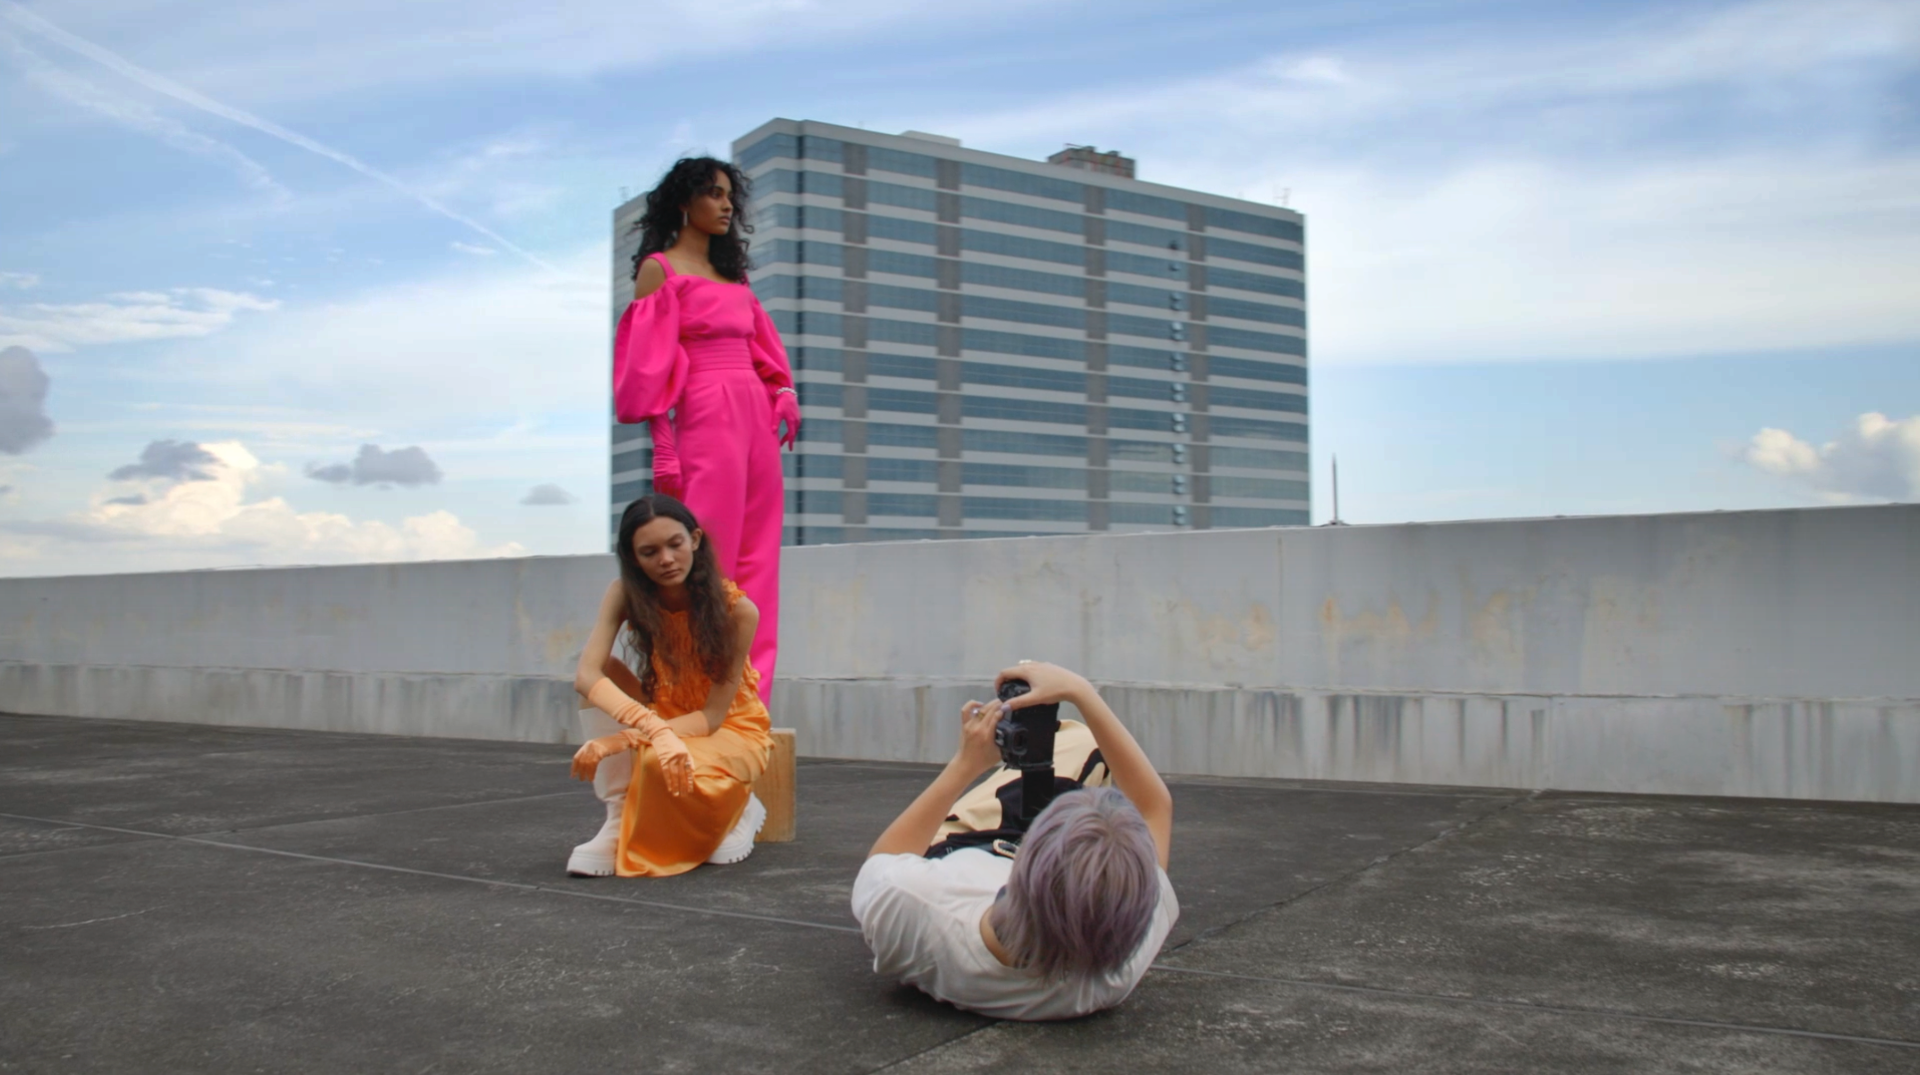 Fashion Photographer Lenne Chai capturing a shot of the models against the sky for a unique perspective